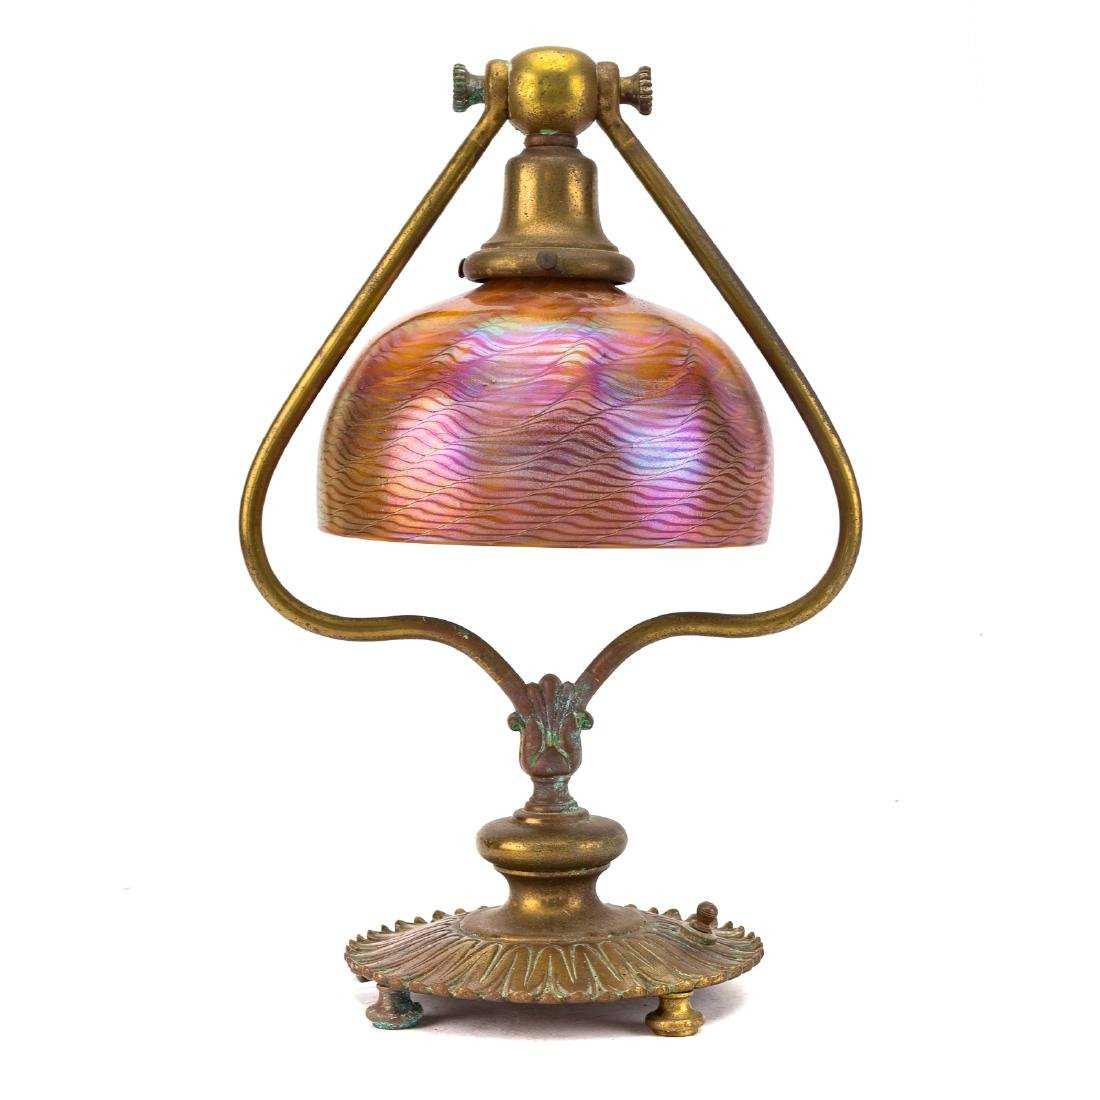 Art Nouveau lamp with Tiffany glass shade